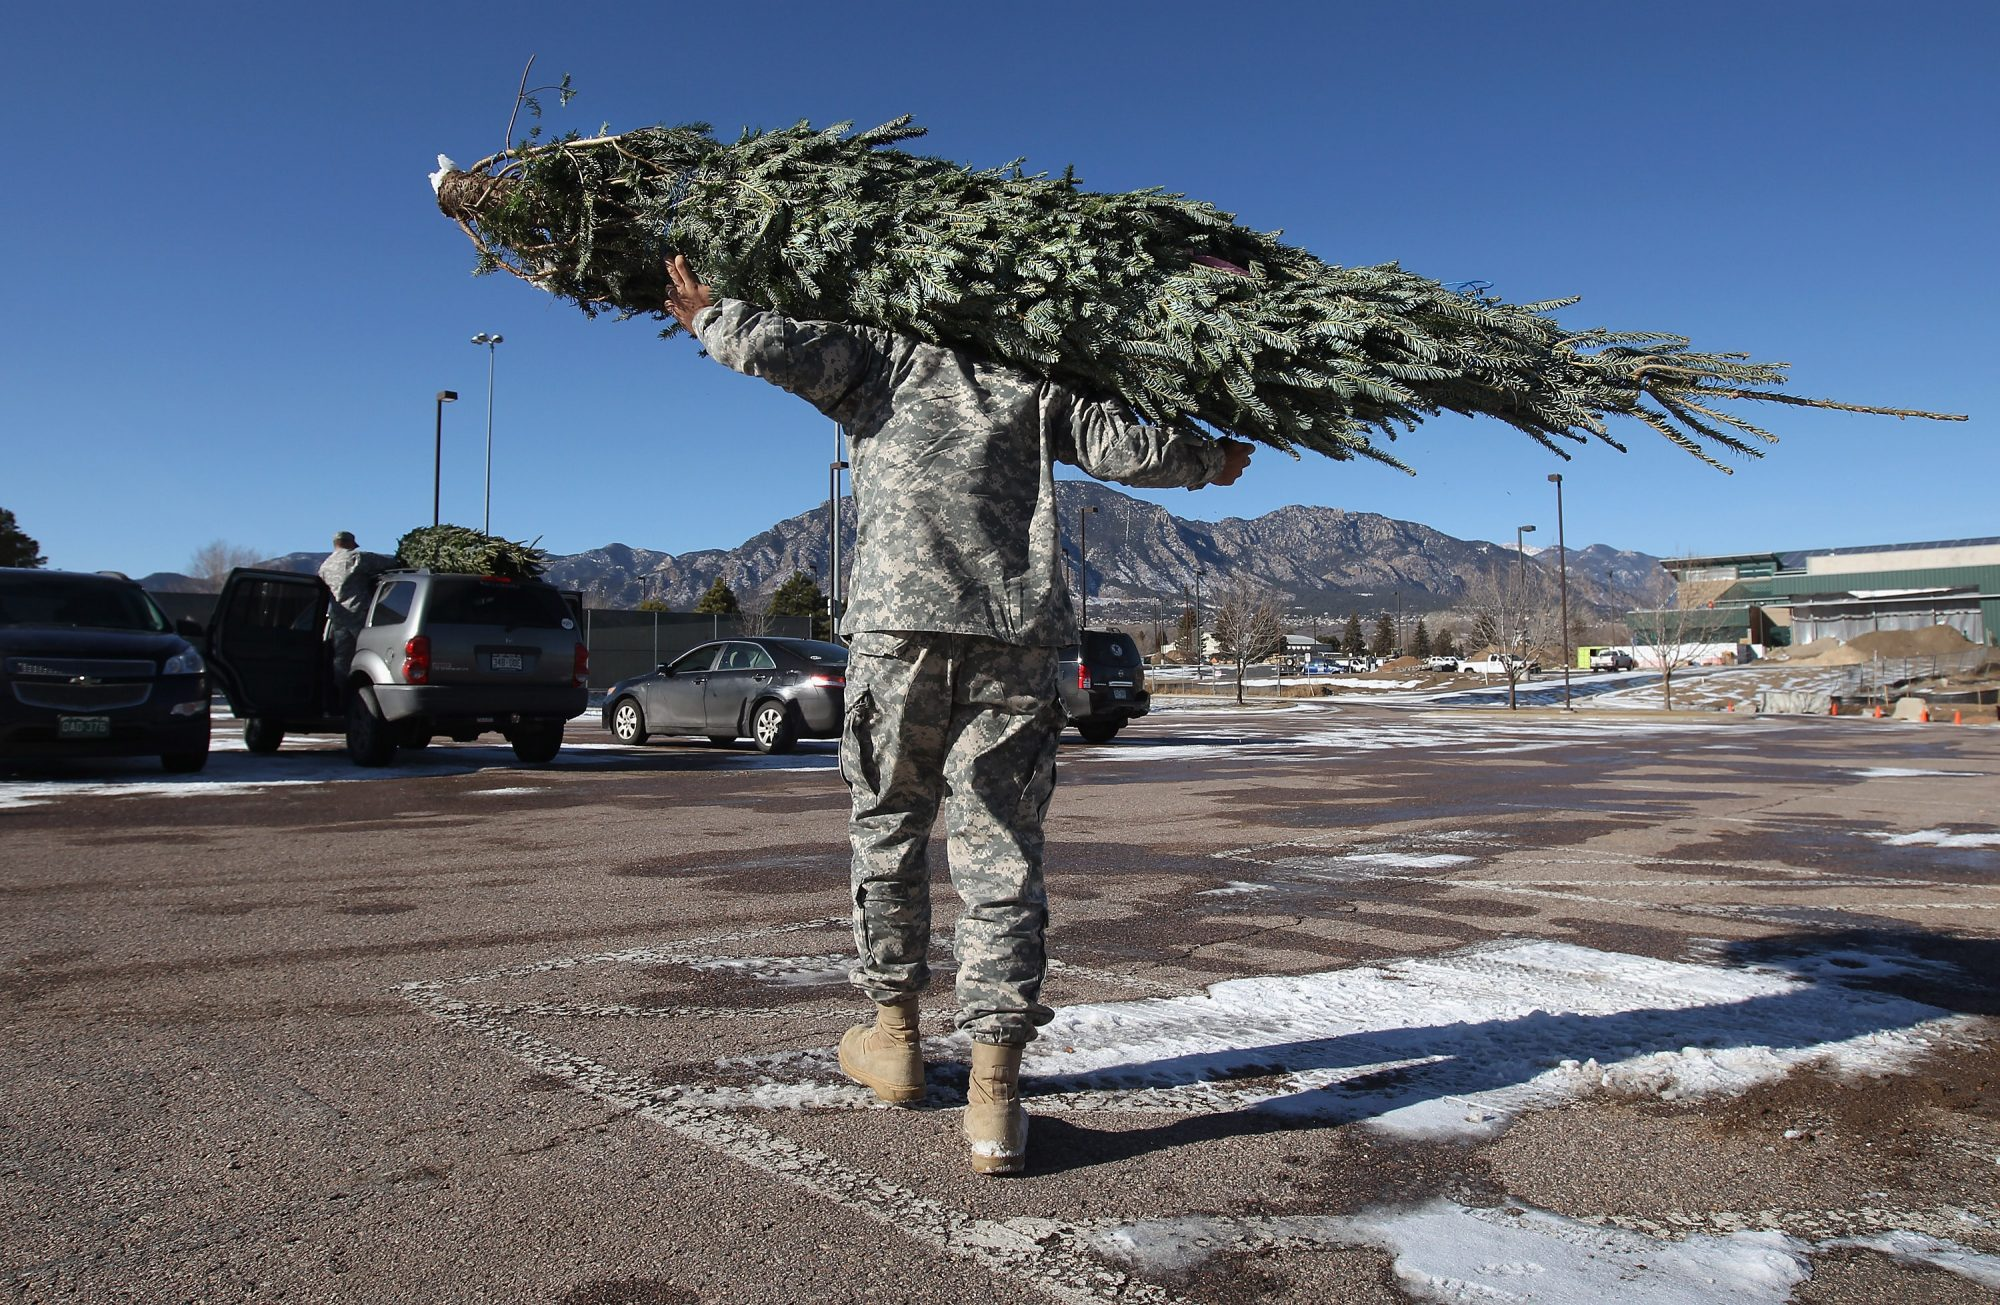 A Tiny Team is Delivering 16,000 Christmas Trees to U.S. Military Families This Holiday Season